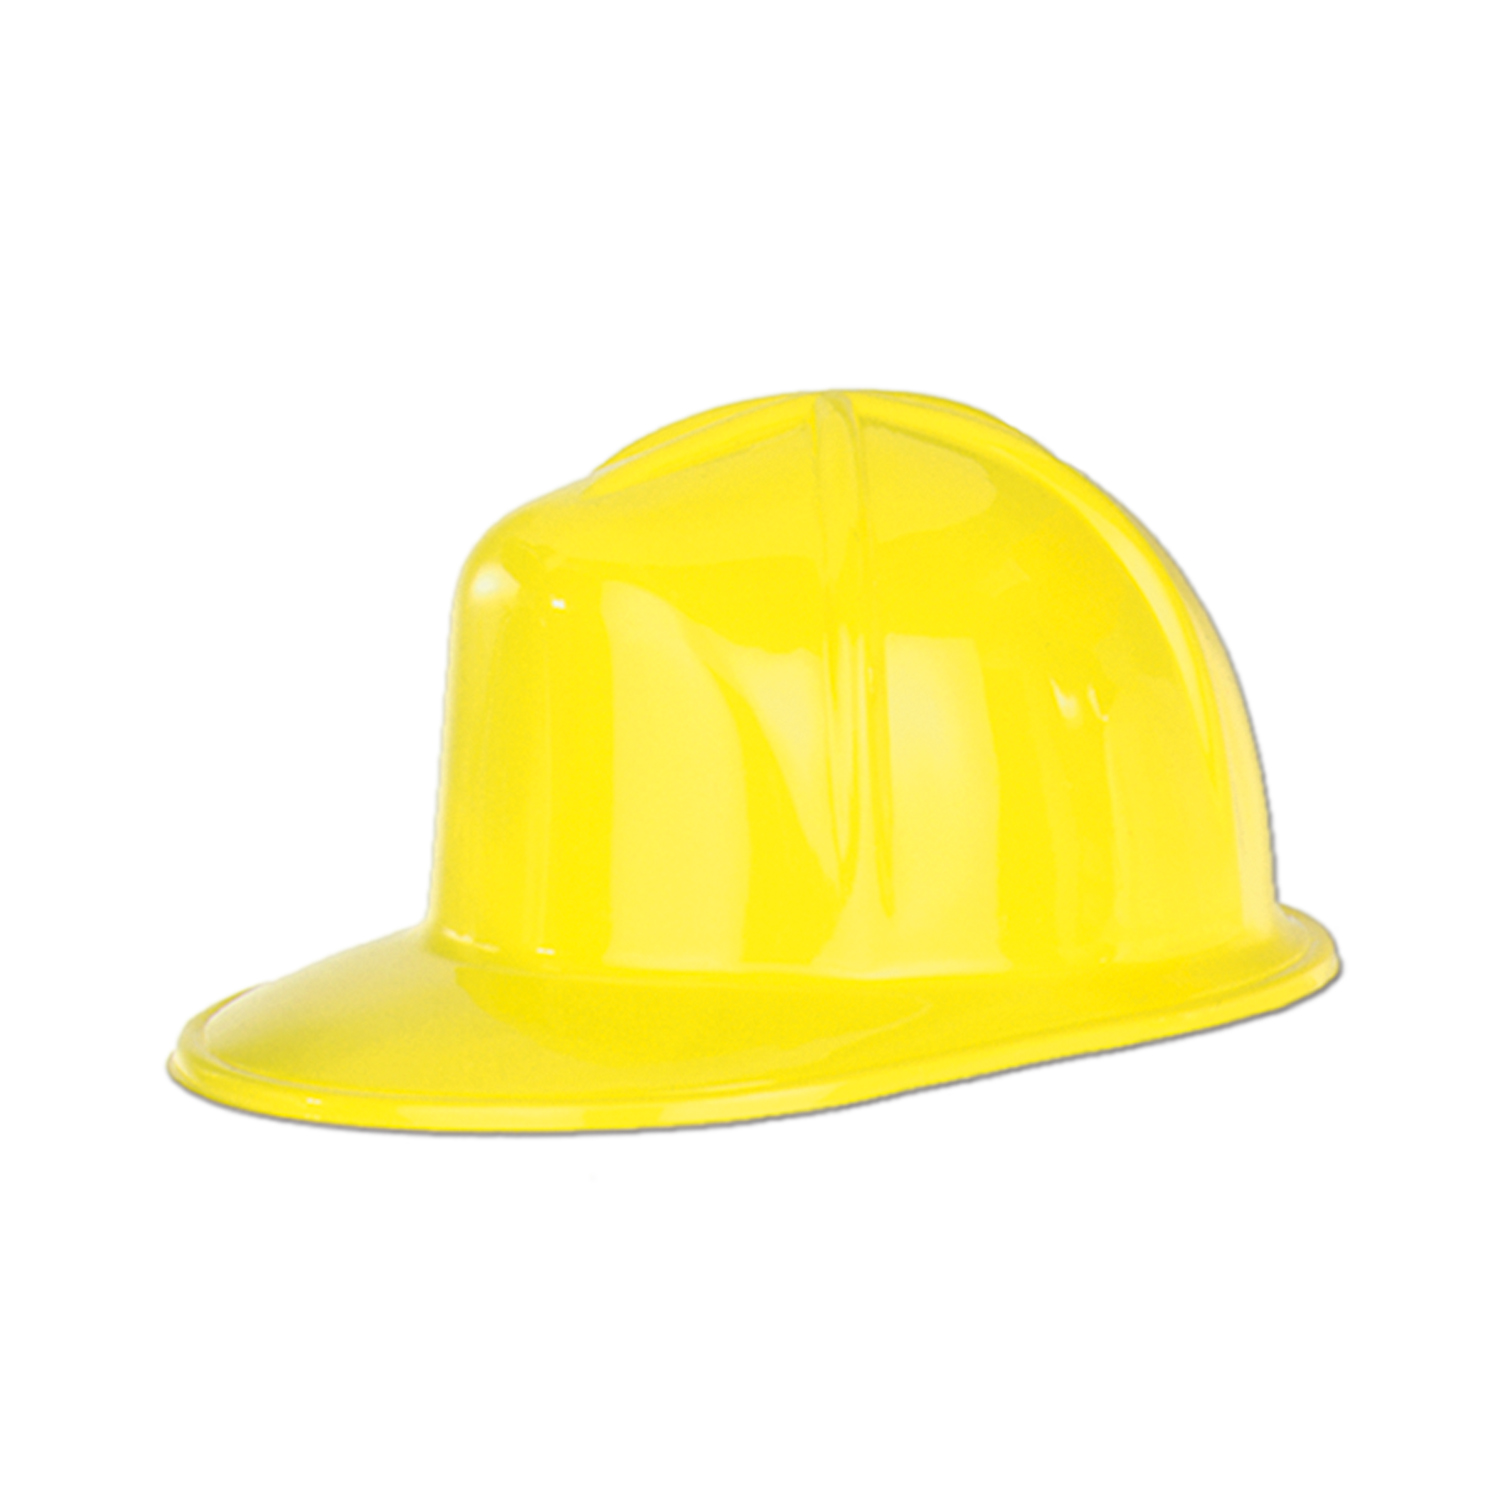 48 Units of Yellow Plastic Construction Helmet one size fits most - Party Hats & Tiara